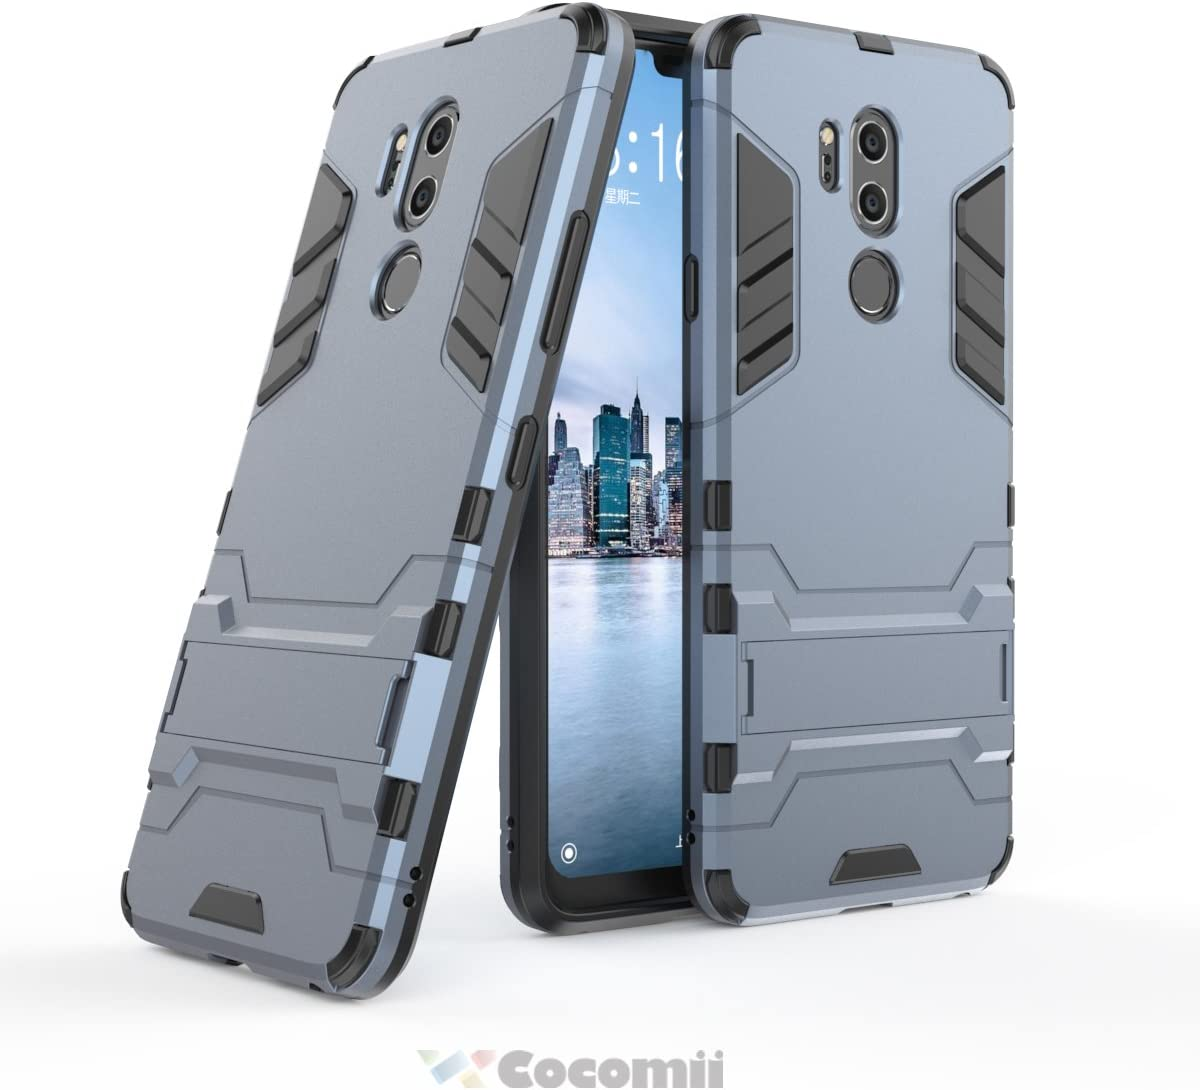 Cocomii Iron Man Armor LG G7/G7+ ThinQ/G7 One Case New [Heavy Duty] Premium Tactical Grip Kickstand Shockproof Hard Bumper [Military Defender] Full Body Dual Layer Rugged Cover for LG G7 (I.Black)